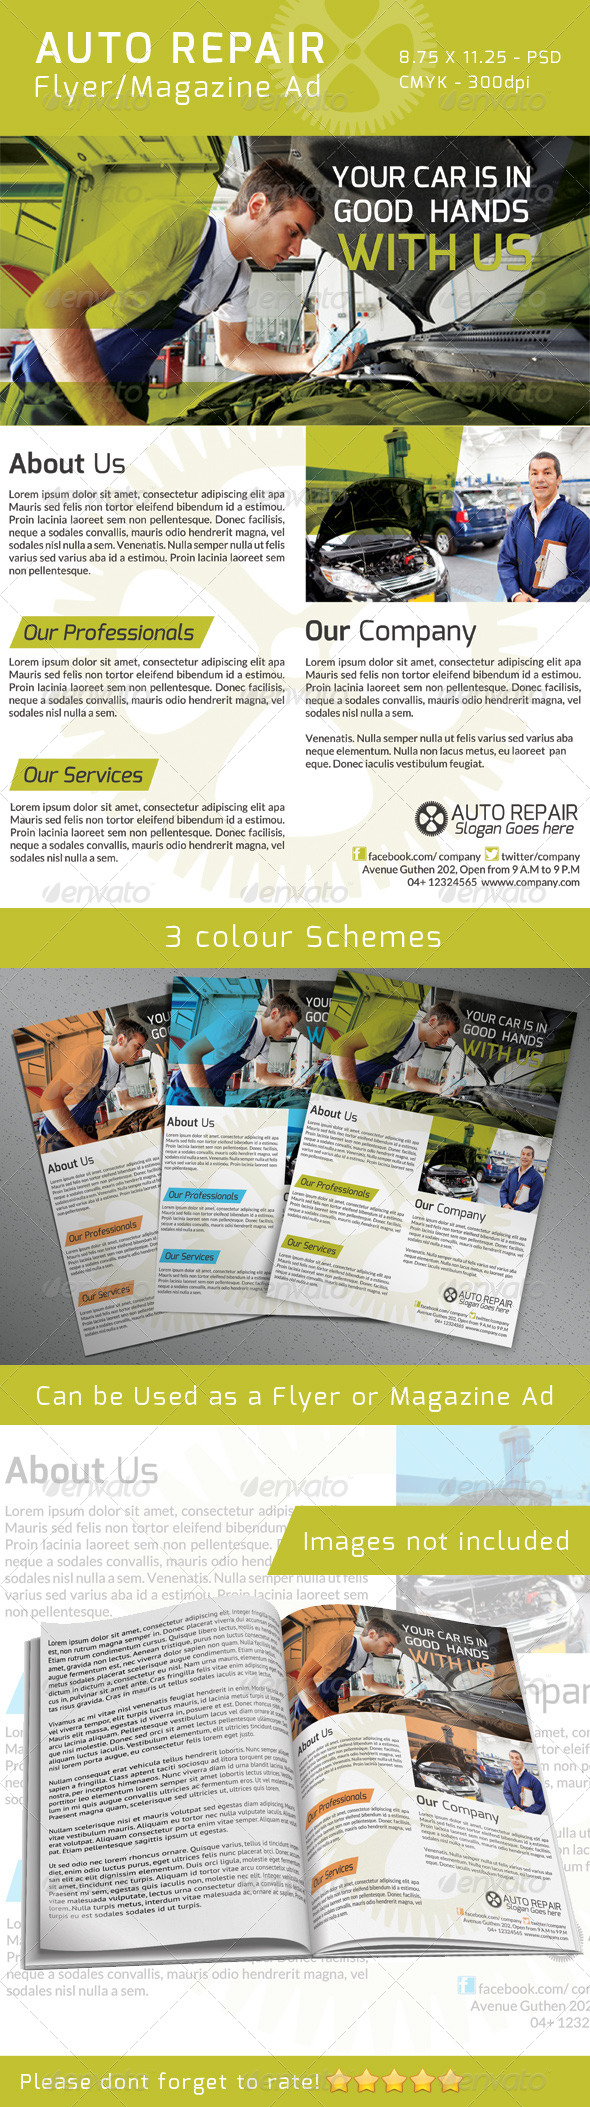 Auto Repair Flyer/ Magazine Ad - Commerce Flyers